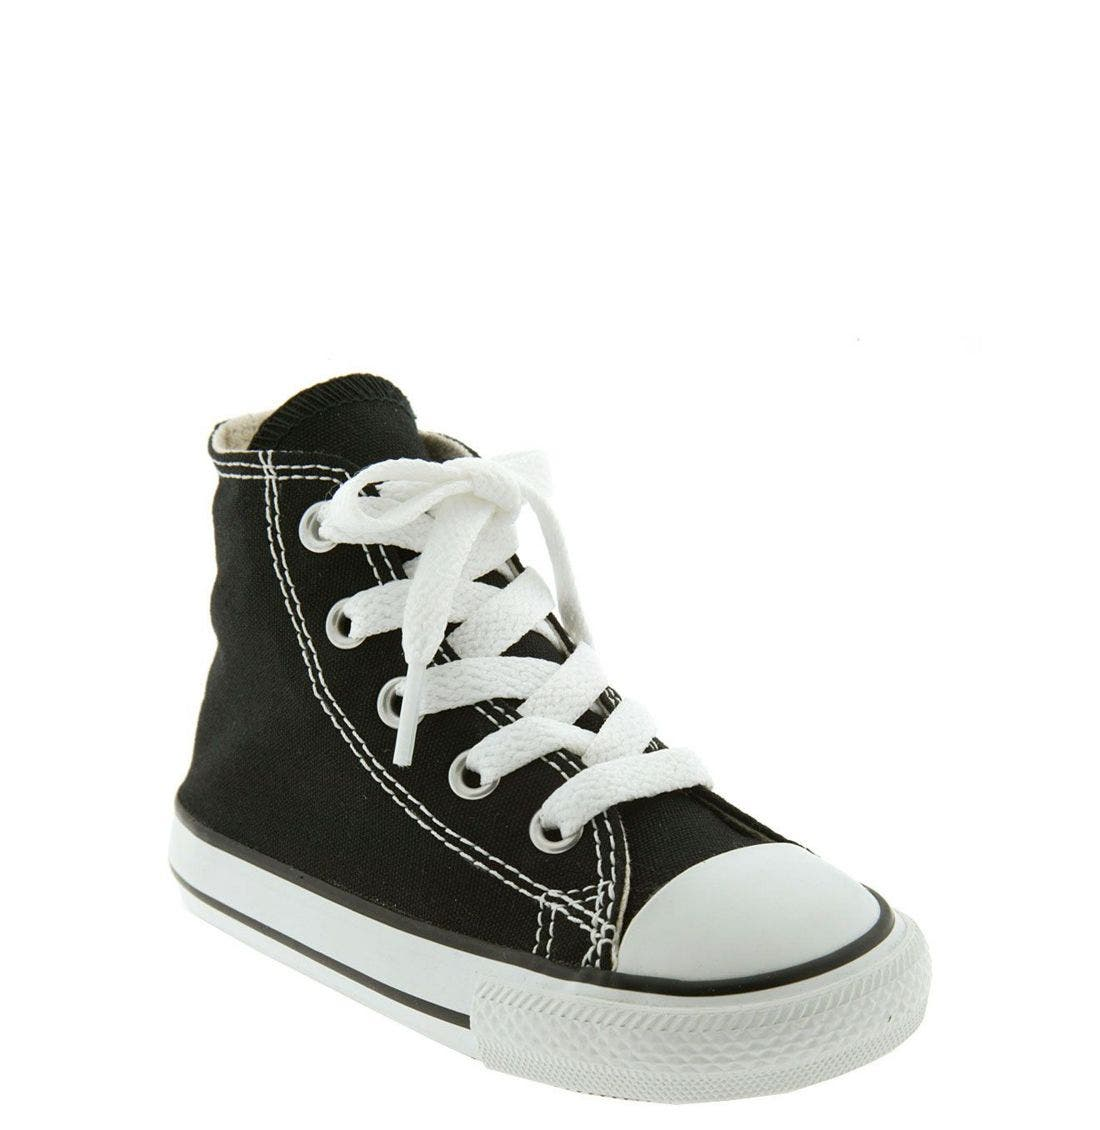 CONVERSE All Star<sup>®</sup> High Top Sneaker, Main, color, BLACK